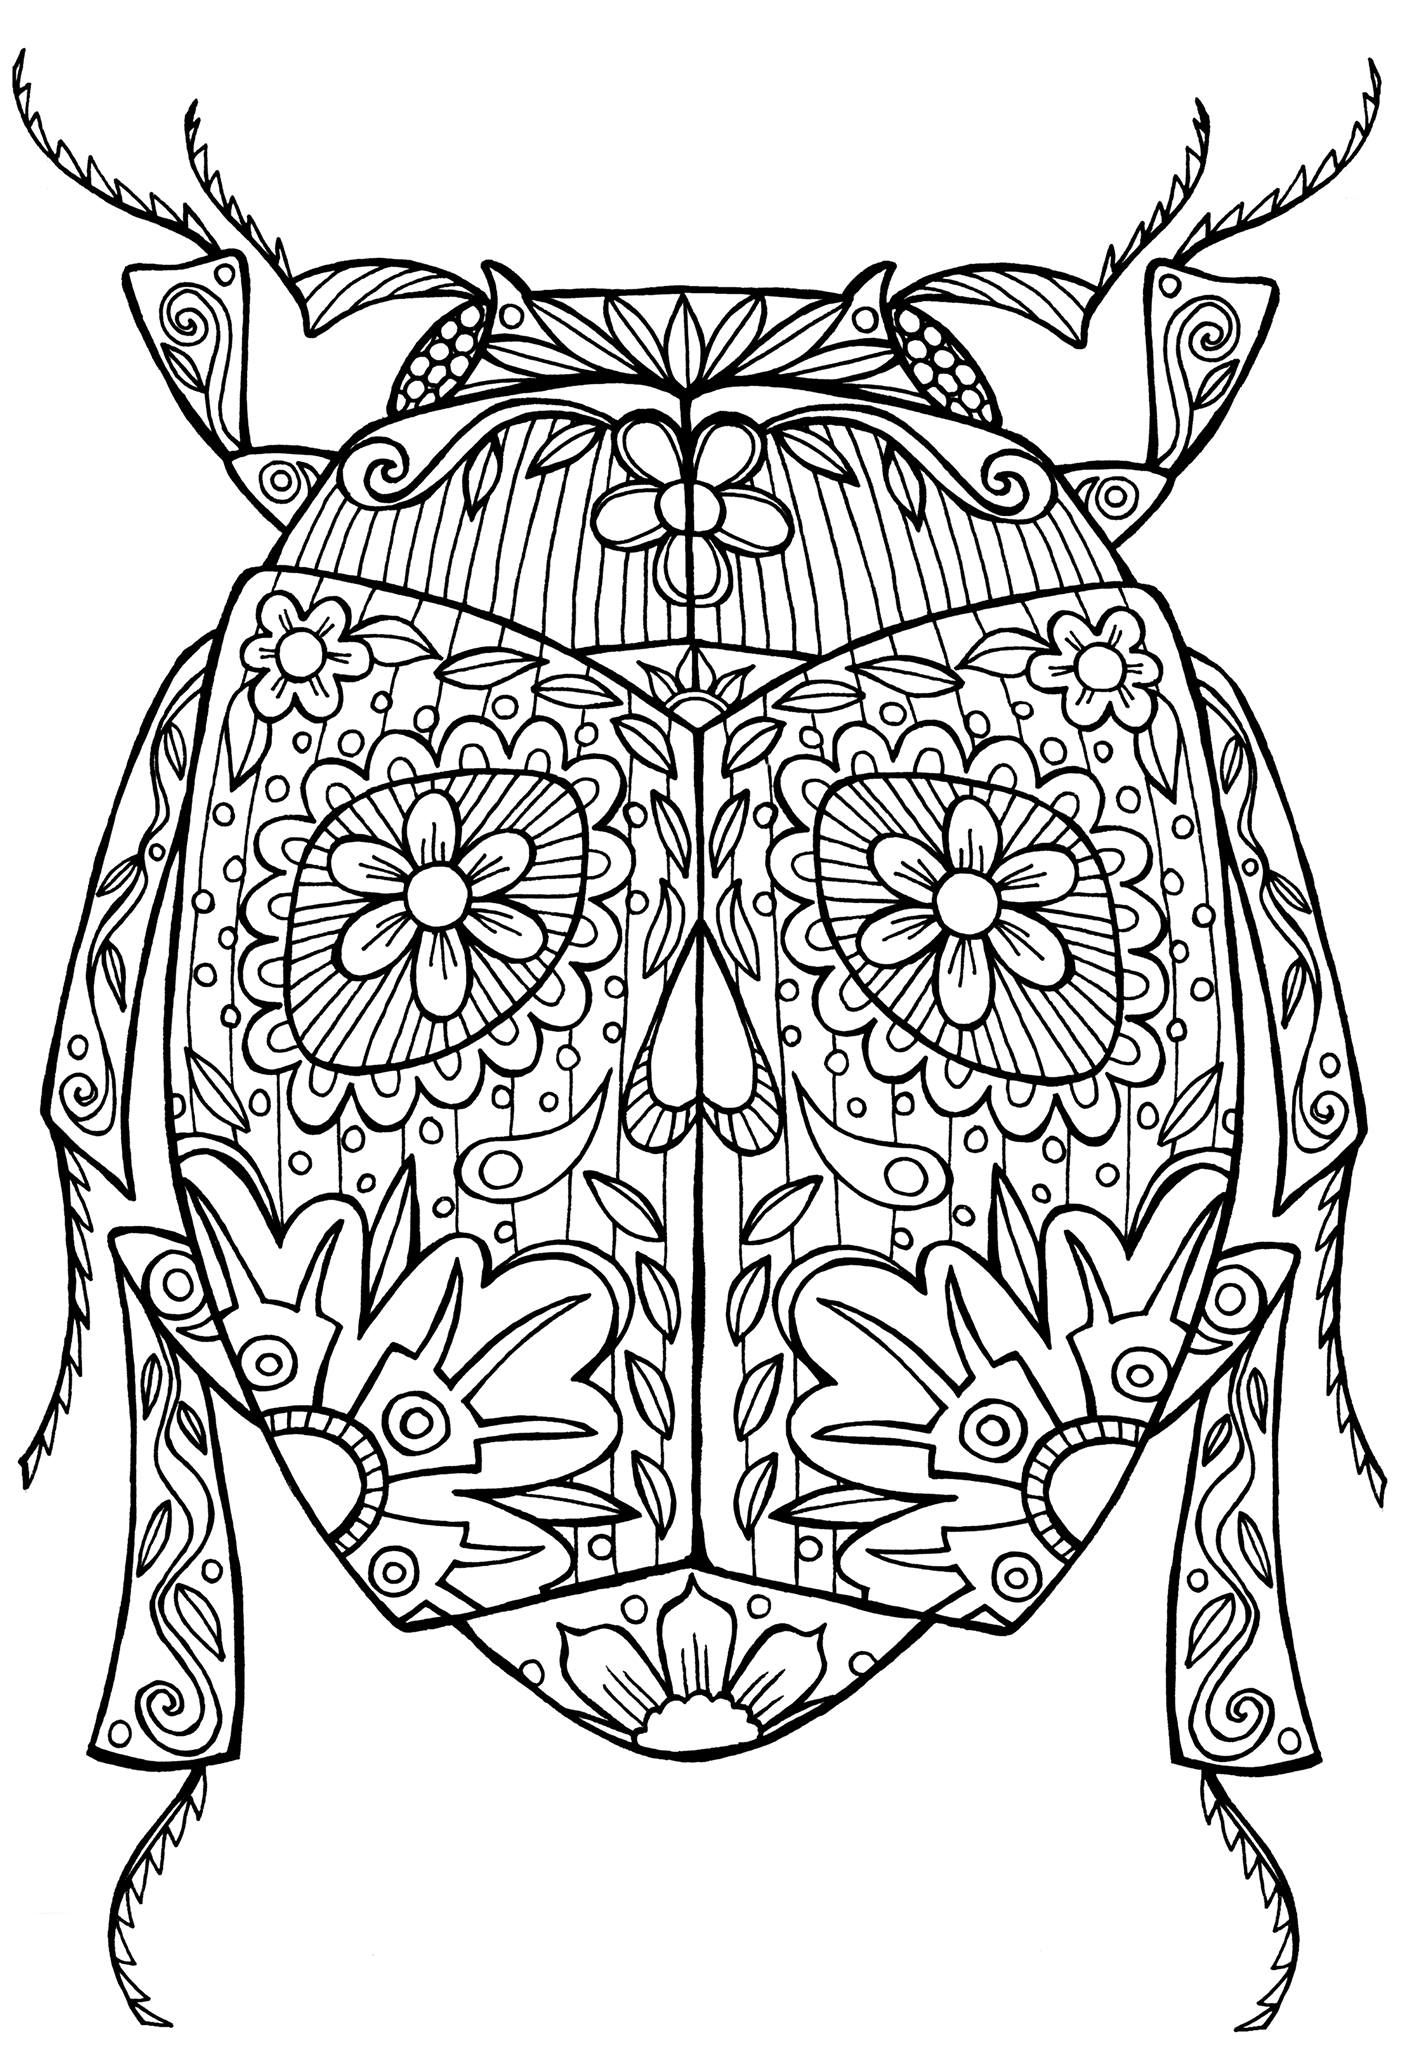 Printable coloring pages zentangle - Beetle Bug Abstract Doodle Zentangle Coloring Pages Colouring Adult Detailed Advanced Printable Kleuren Voor Volwassenen Coloriage